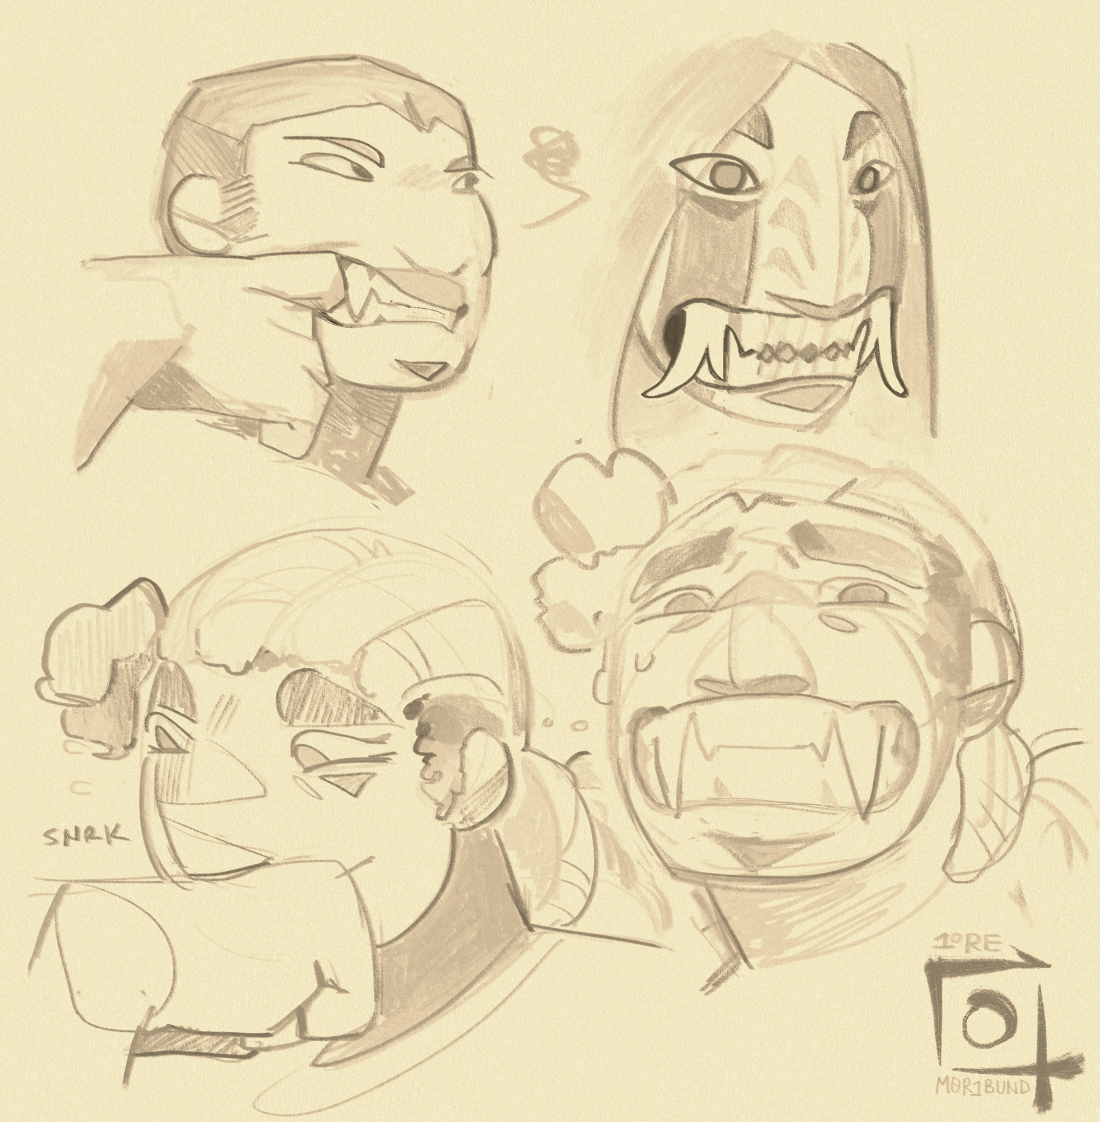 A few sketches of various Sauntiaq and their teeth. Rayet has relatively small canines, where the god from the disease has large, dramatic, two-pronged fangs. With some convincing, Morgan also shows his chompers, revealing particularly large lower canines.